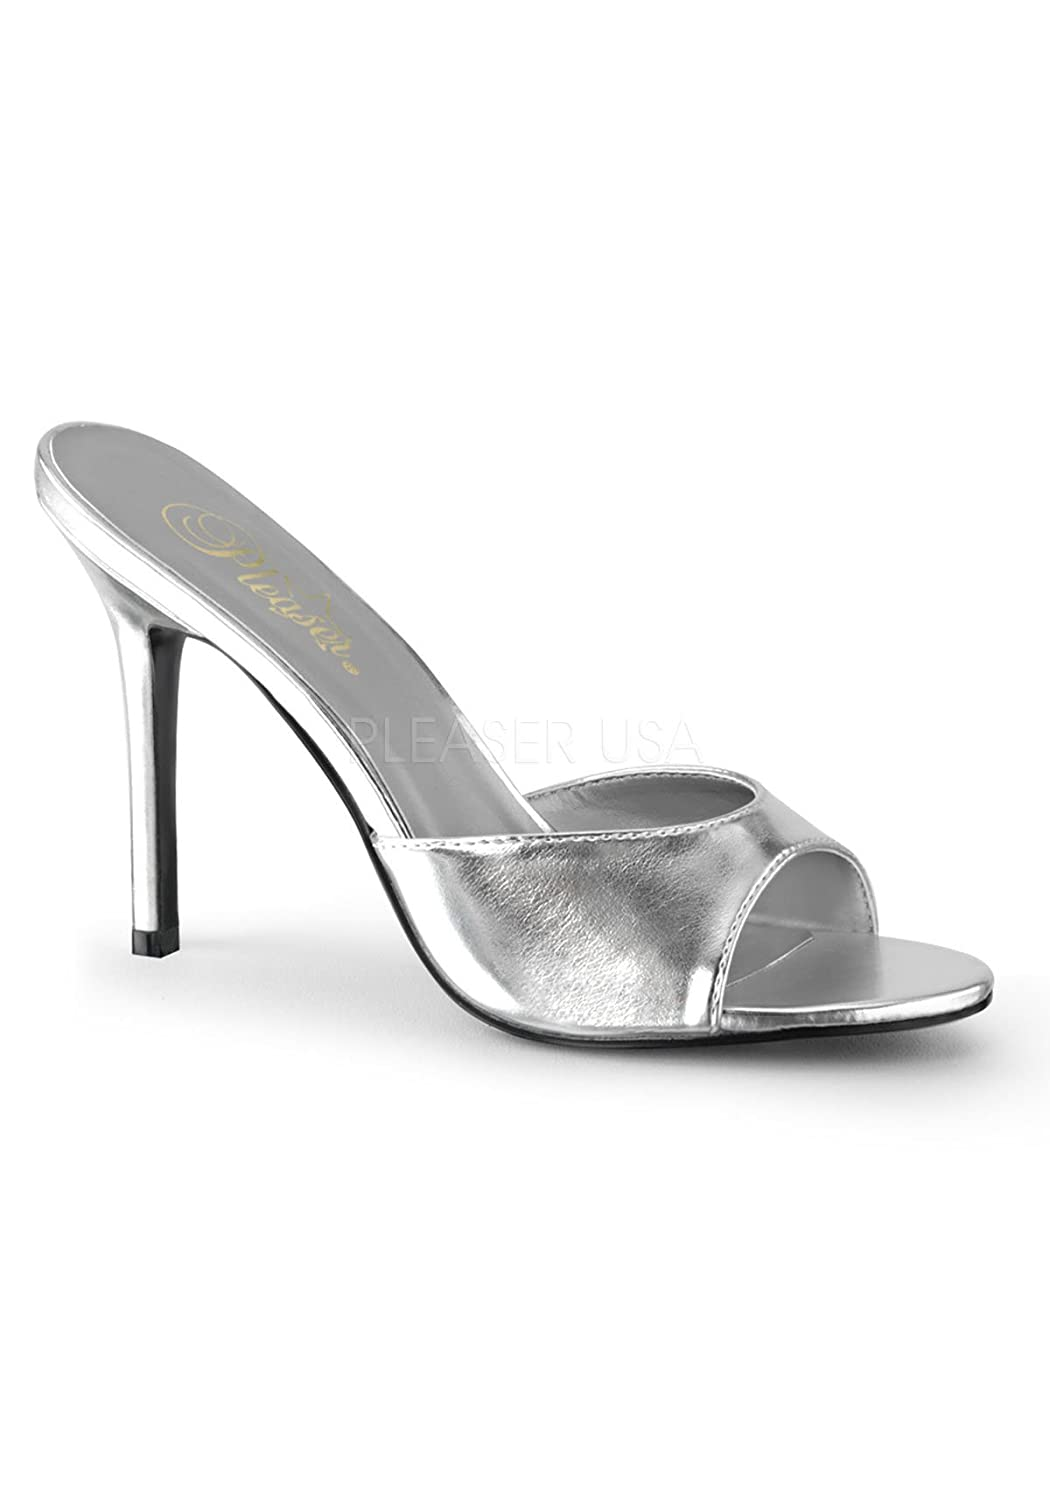 Pleaser CLASSIQUE-01 CLASSIQUE-01 Pleaser Damen Pantolette, PU Silber Metallic, EU 44 (US 13) 0a7c82